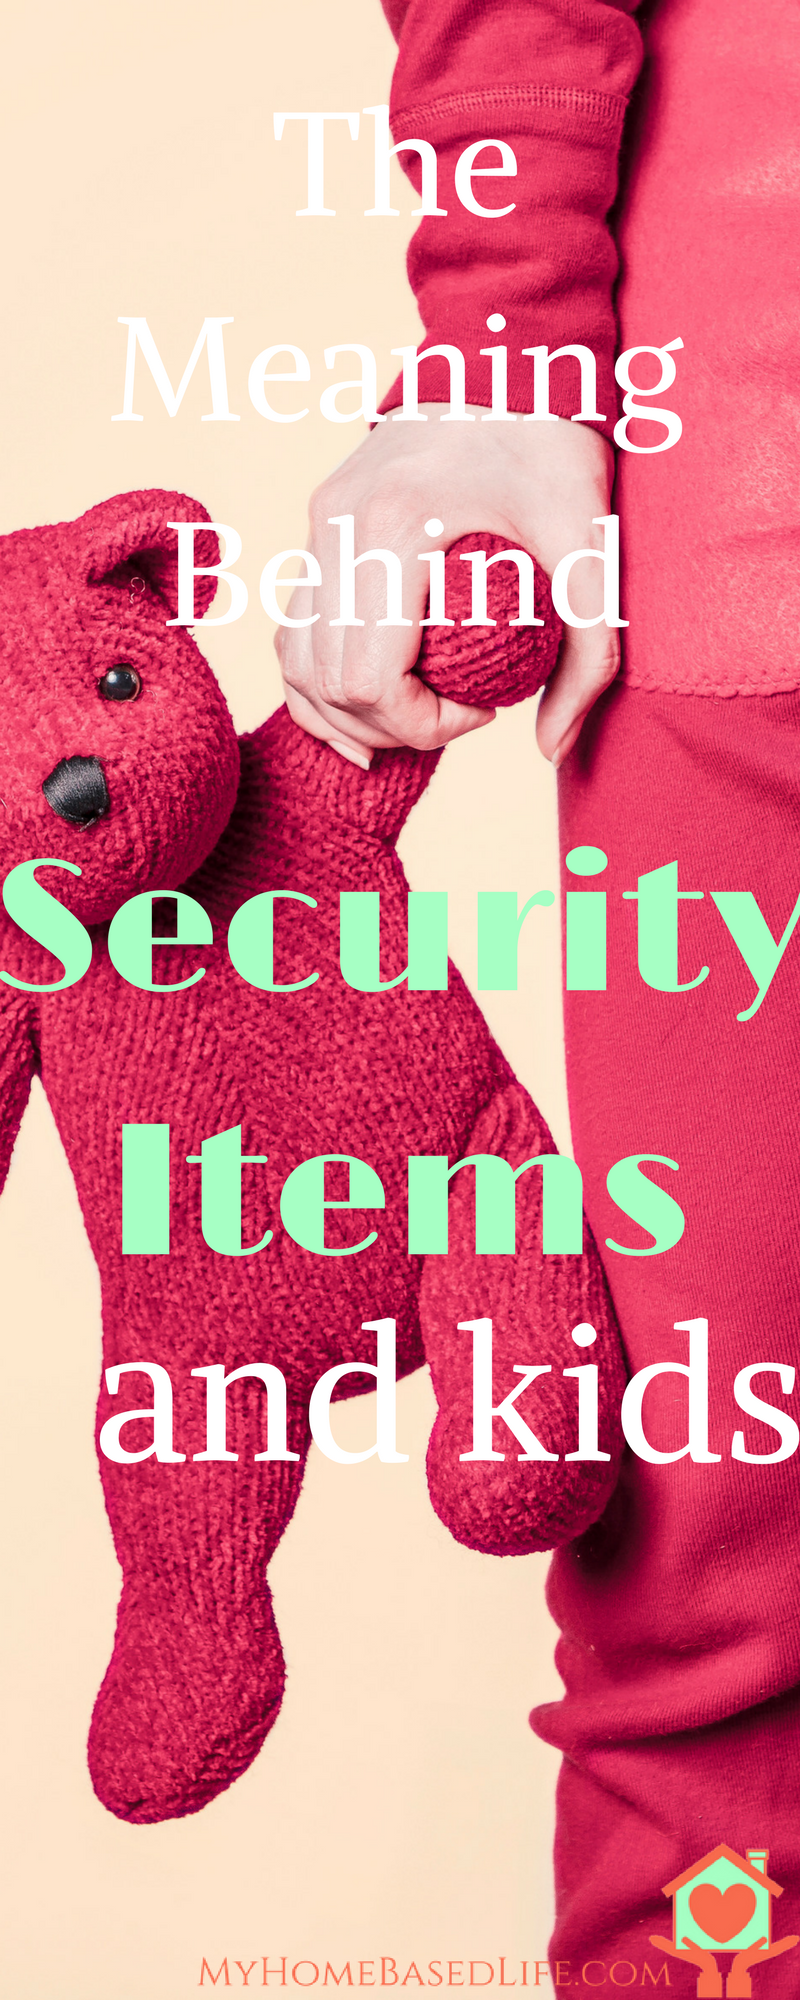 Security Items and Kids - Parenting tips as to the meaning behind it. | Kids | Security Items | Kids Blankets | Transitional Items |